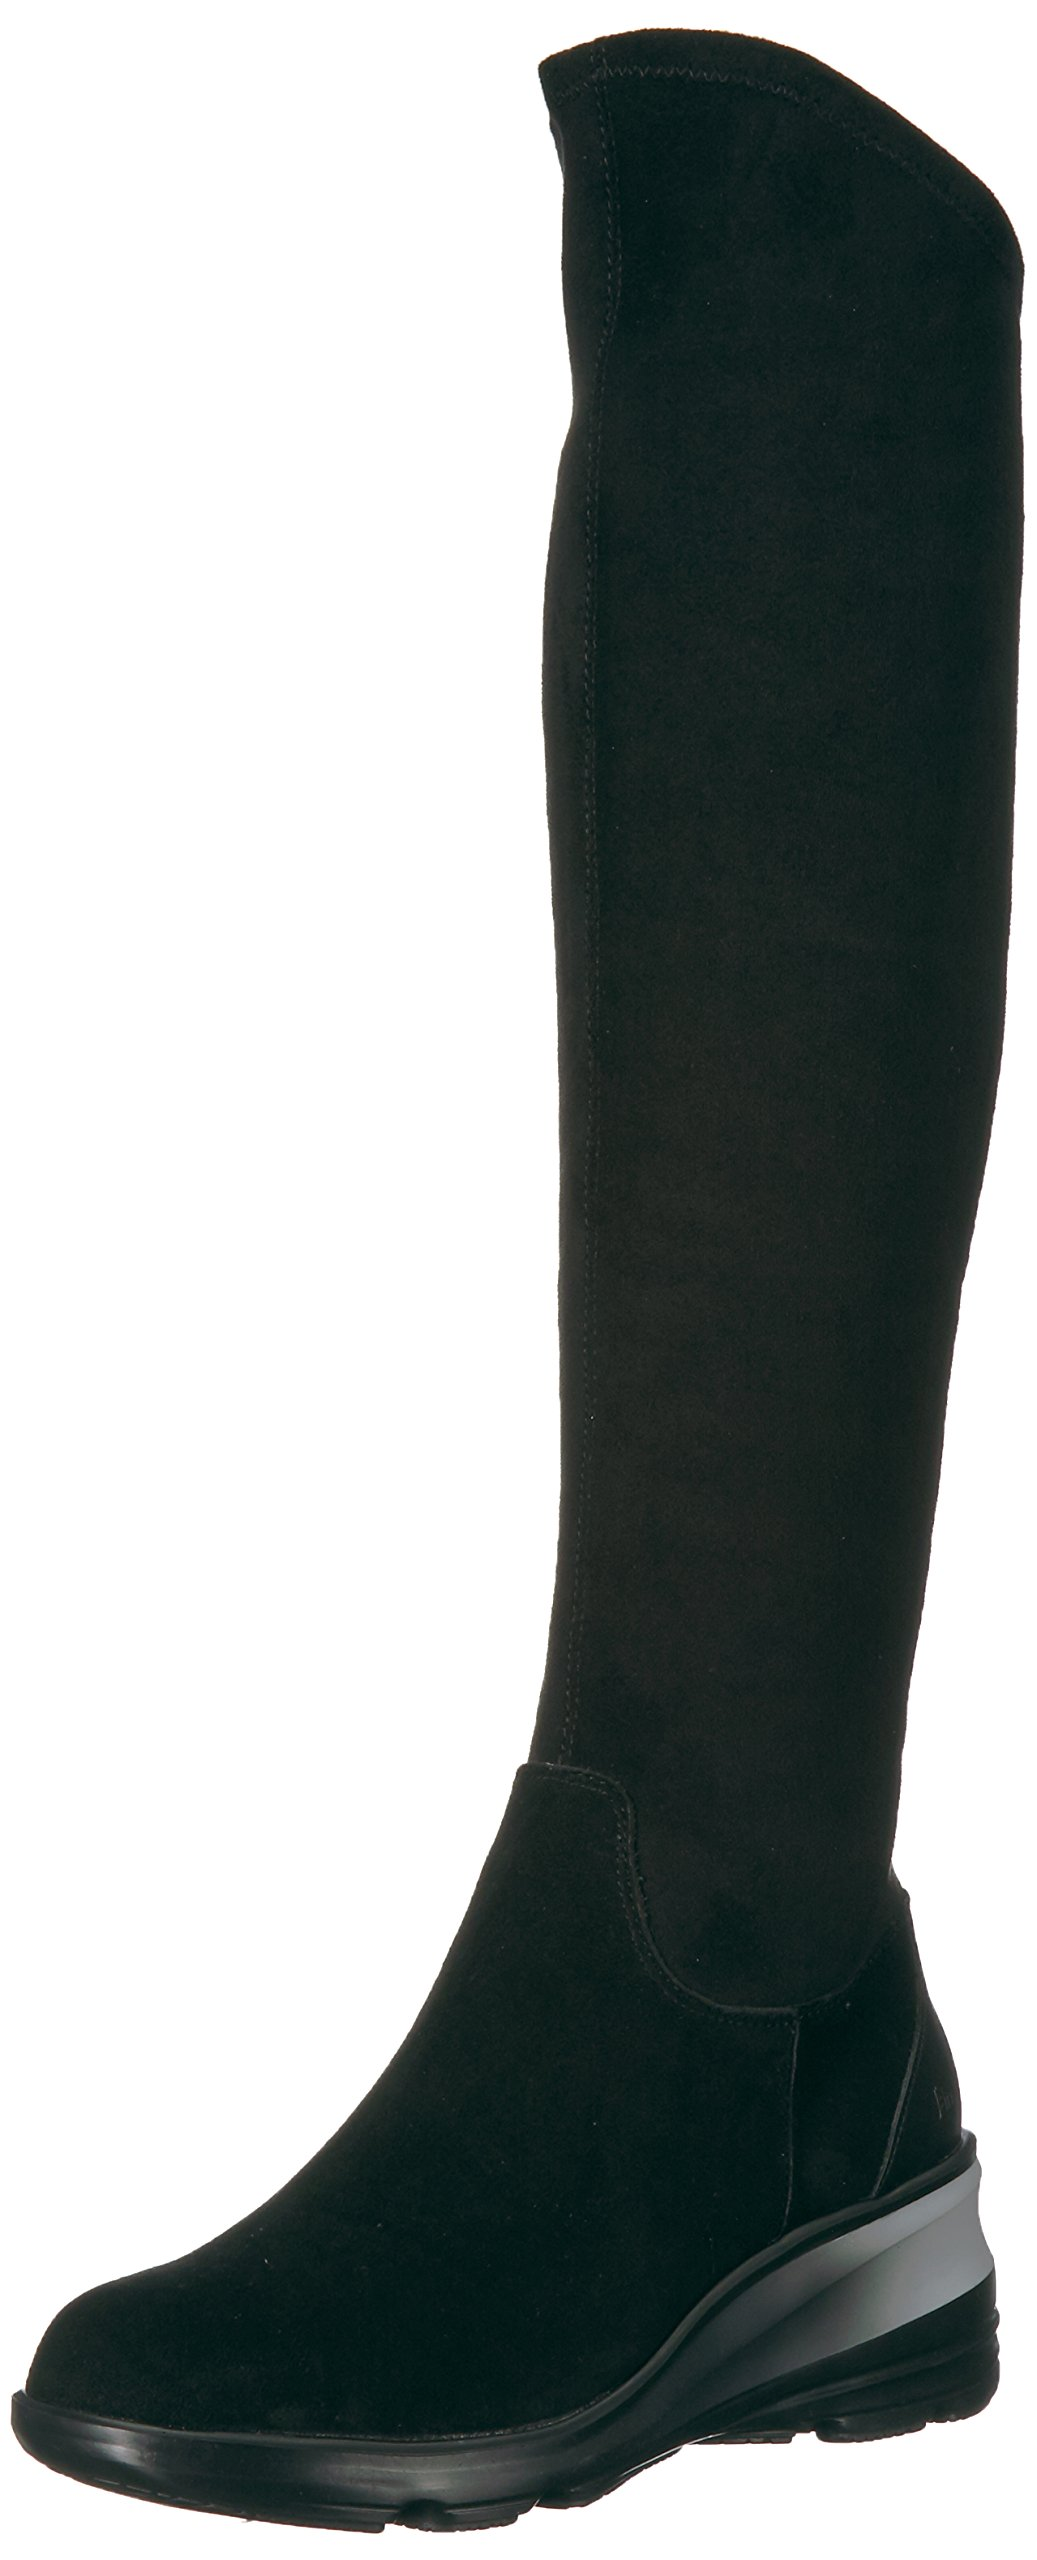 Jambu Women's Kendra Water Resistant Slouch Boot, Black, 9 M US by Jambu (Image #1)